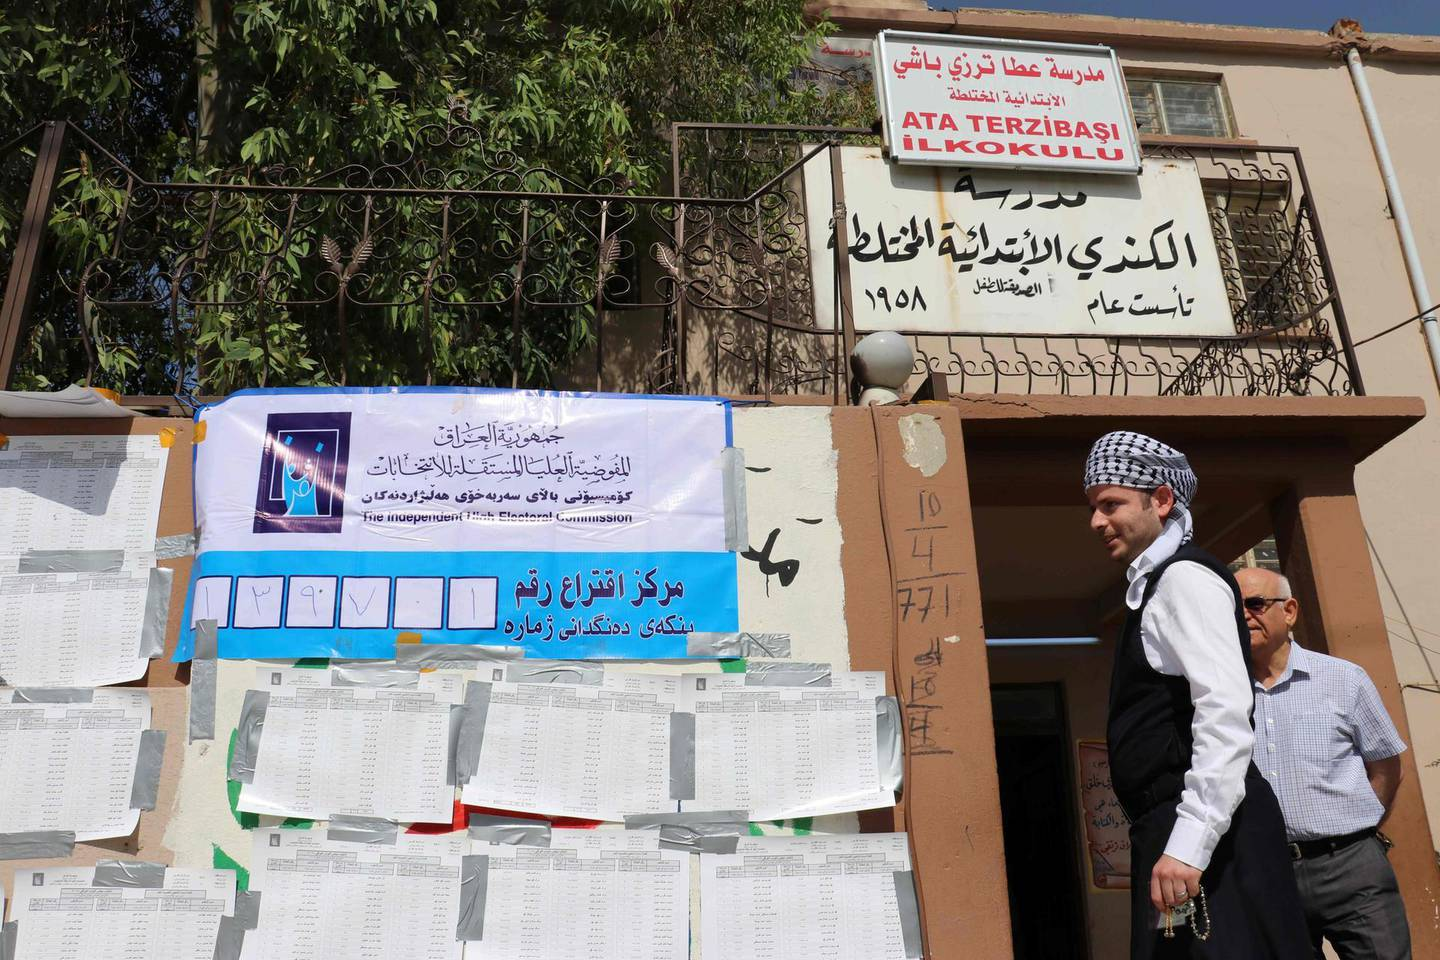 An Iraqi man walks outside a poll station in the northern multi-ethnic city of Kirkuk on May 12, 2018, as the country votes in the first parliamentary election since declaring victory over the Islamic State (IS) group. Polling stations opened at 7:00 am for the roughly 24.5 million registered voters to cast their ballots across the conflict-scarred nation. / AFP / Marwan IBRAHIM